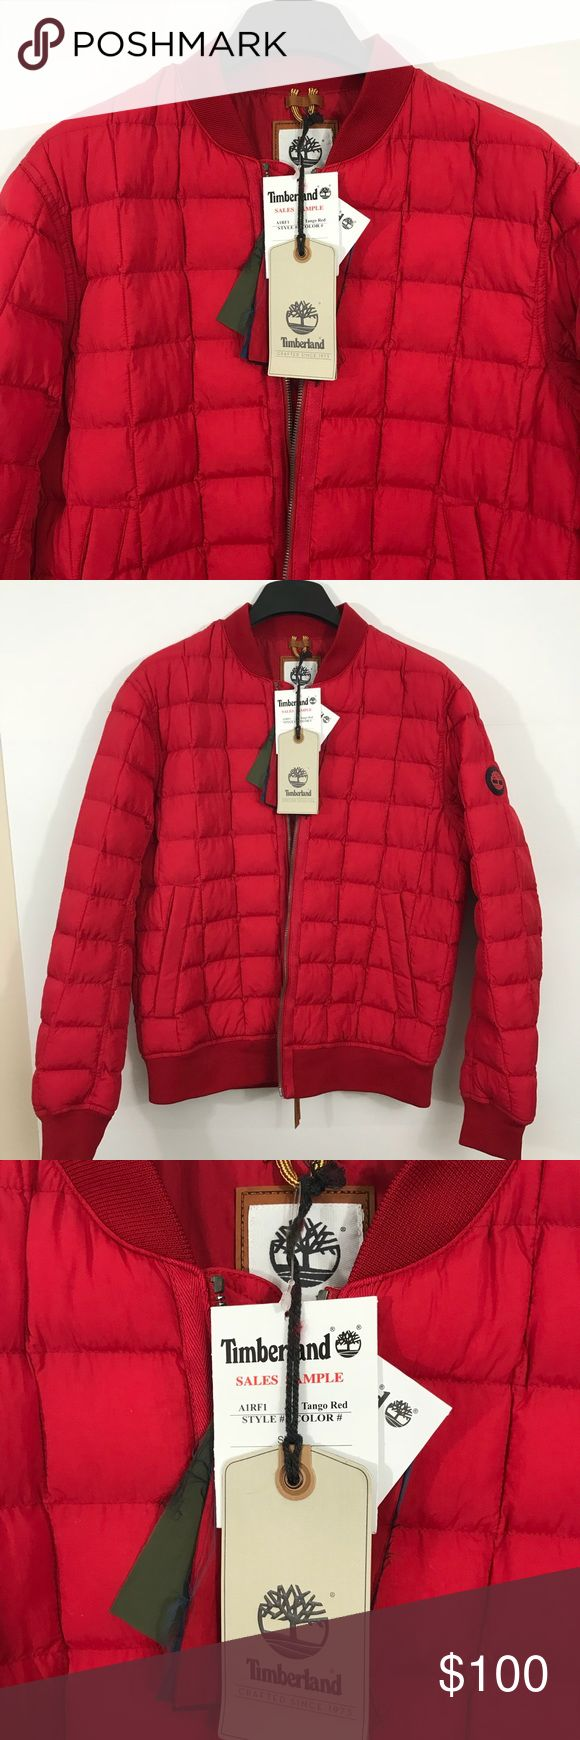 🔥🔥🔥New Timberland ThermoFibre Brand New, sample run. Only 250 in existence from various colors. Never worn. This is Timberlands cutting  edge technology on Thermo insulation. Timberland Jackets & Coats Performance Jackets